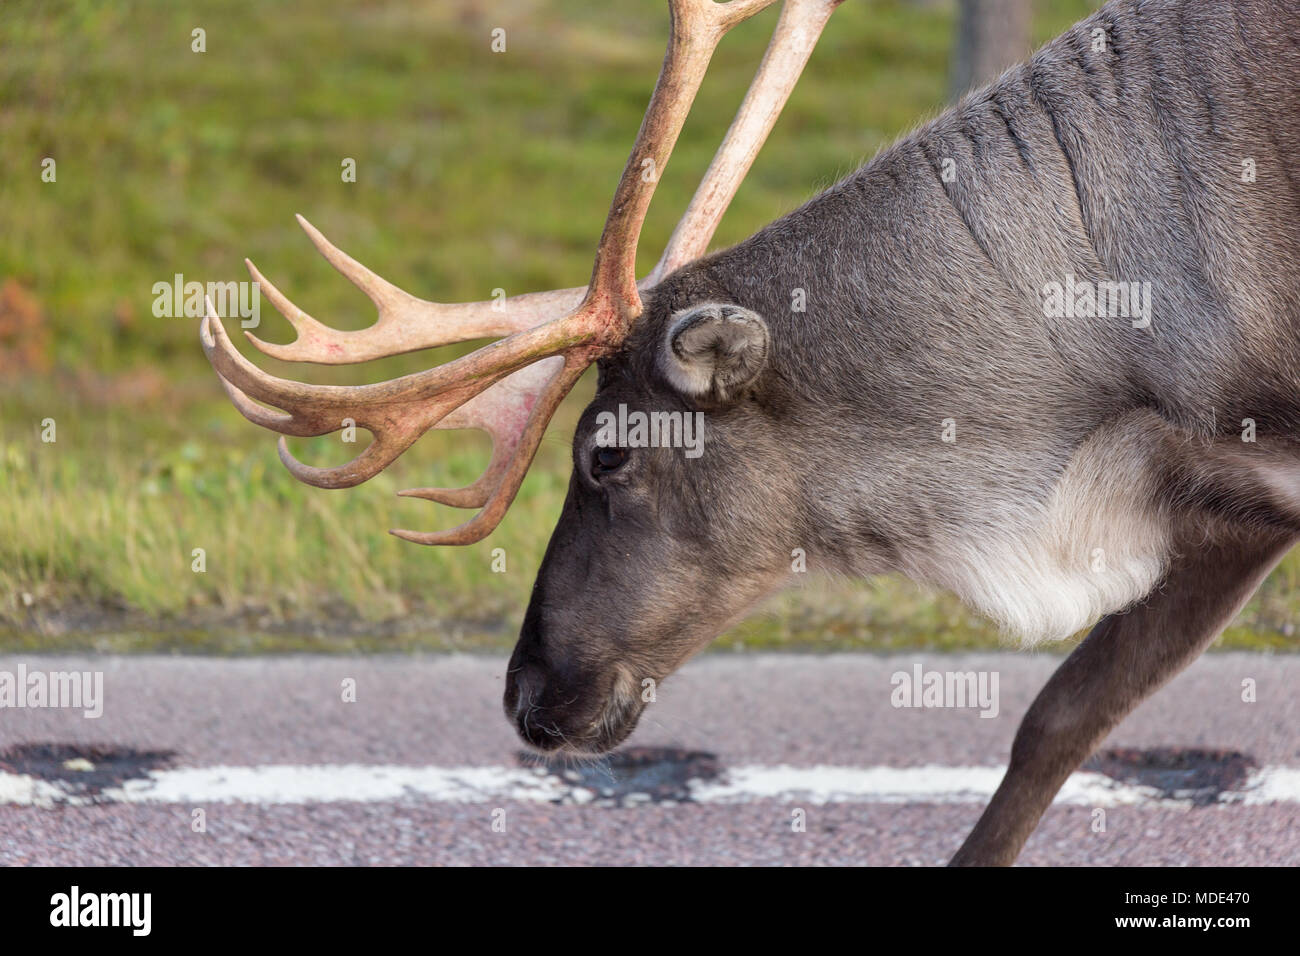 Reindeer with bloody antlers walking on the side of the road - Stock Image